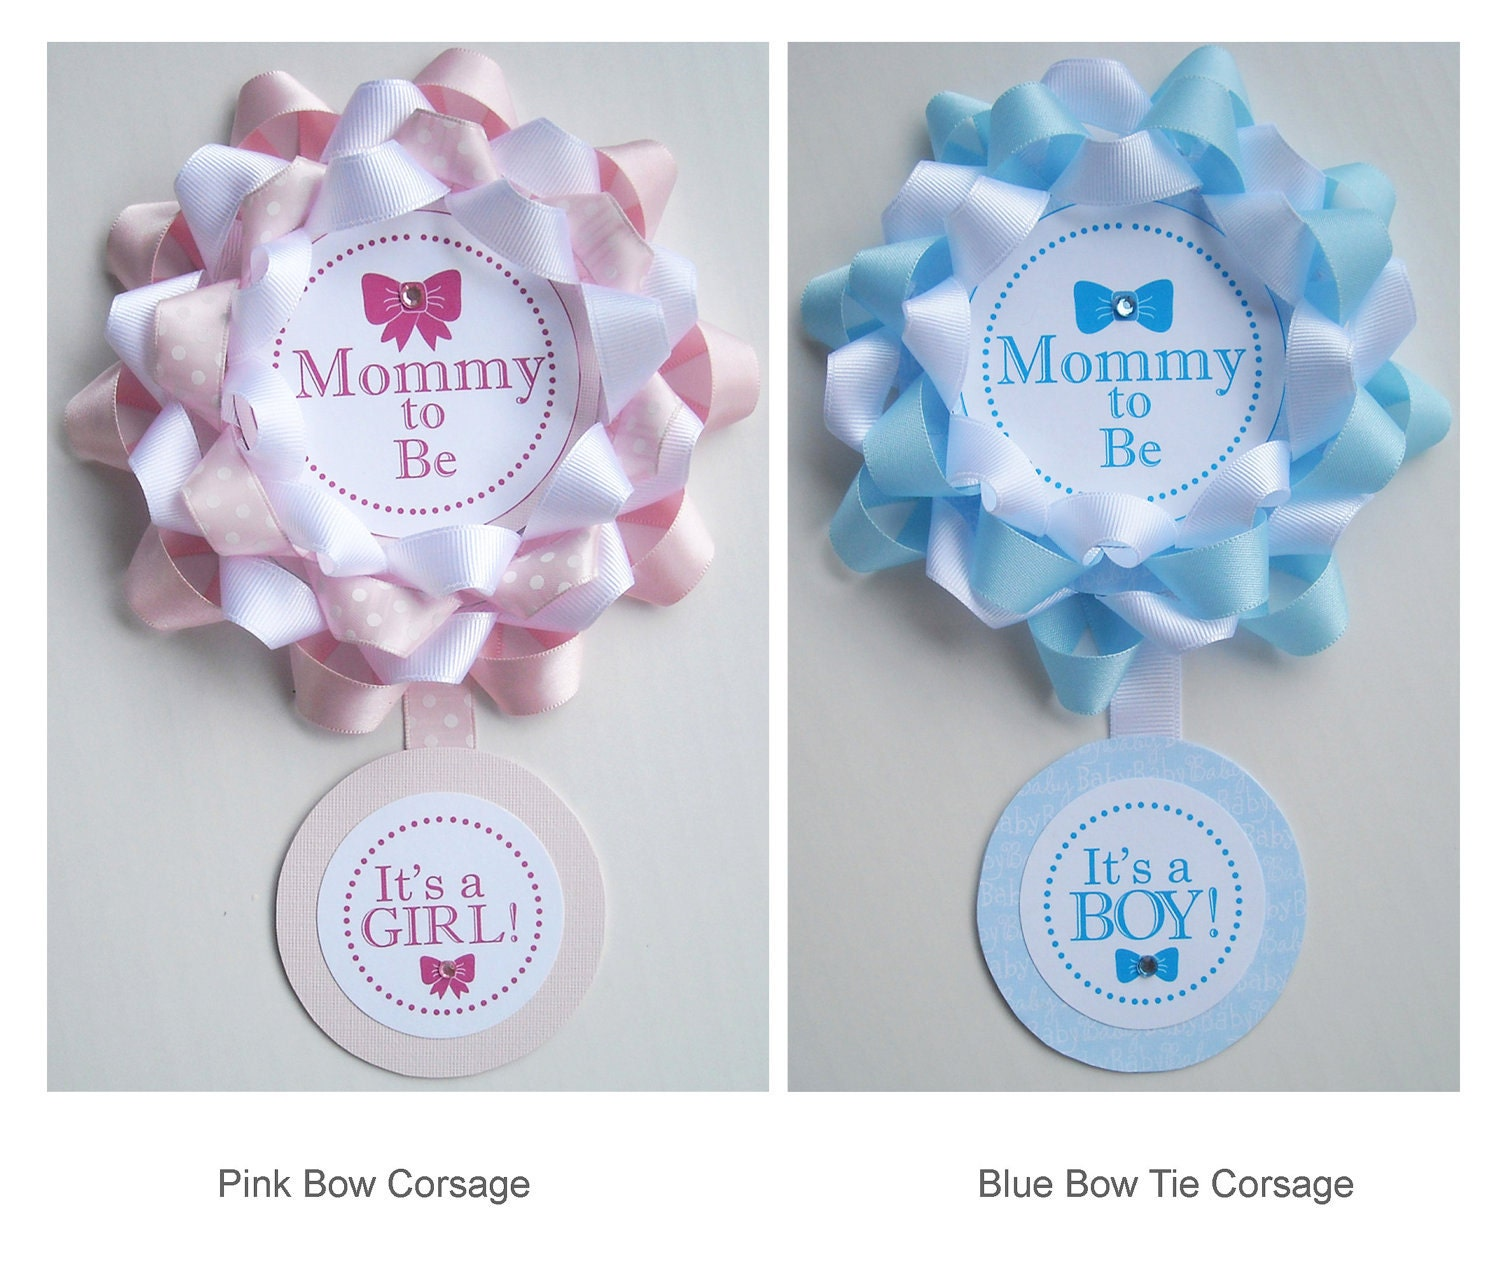 mommy to be baby shower corsage grandma to be corsage